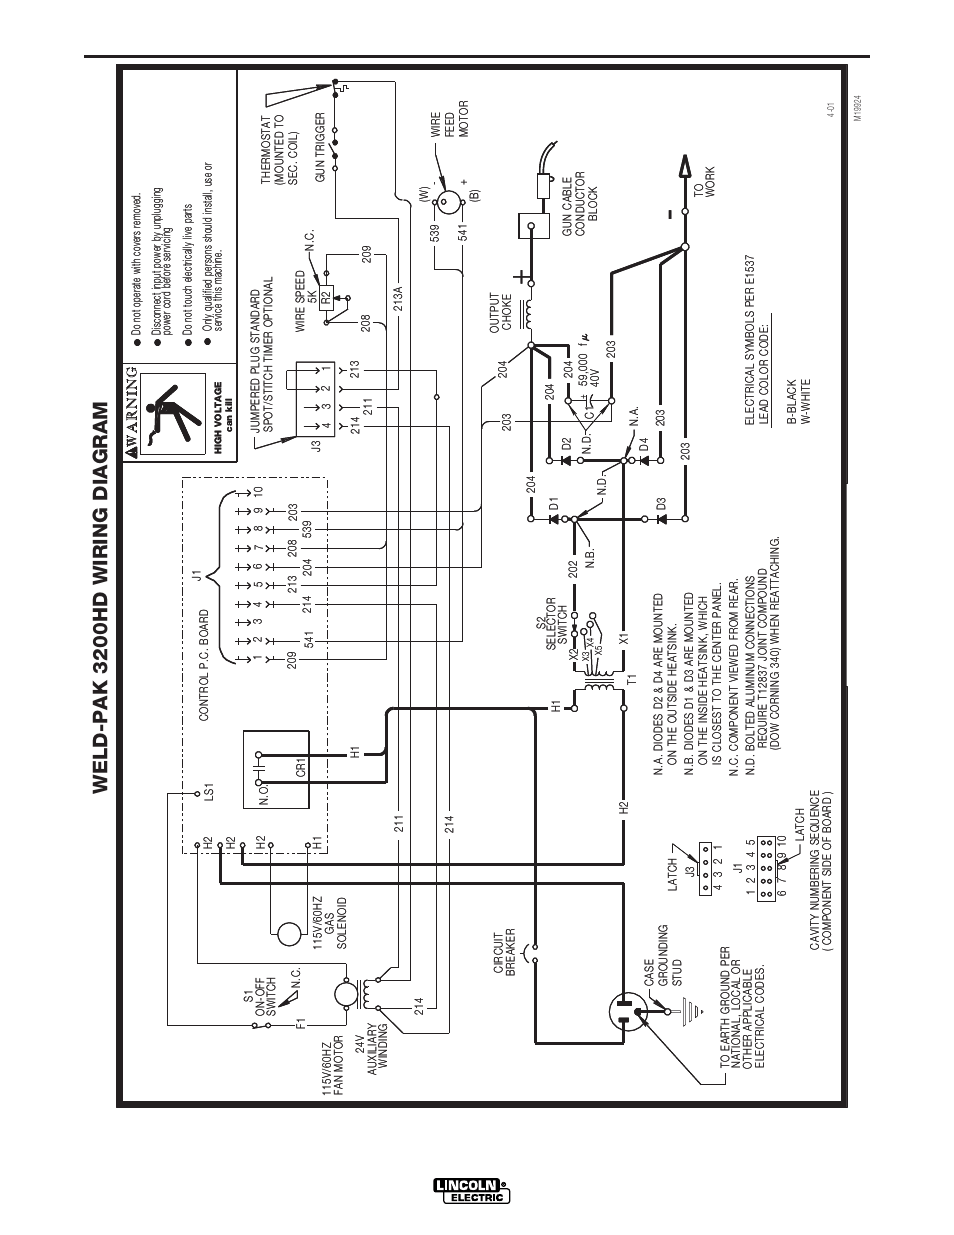 lincoln electric weld pak 3200hd page43?resize\\\\\\\\\\\\\\\\\\\\\=665%2C861 wiring diagram for millermatic gandul 45 77 79 119  at panicattacktreatment.co